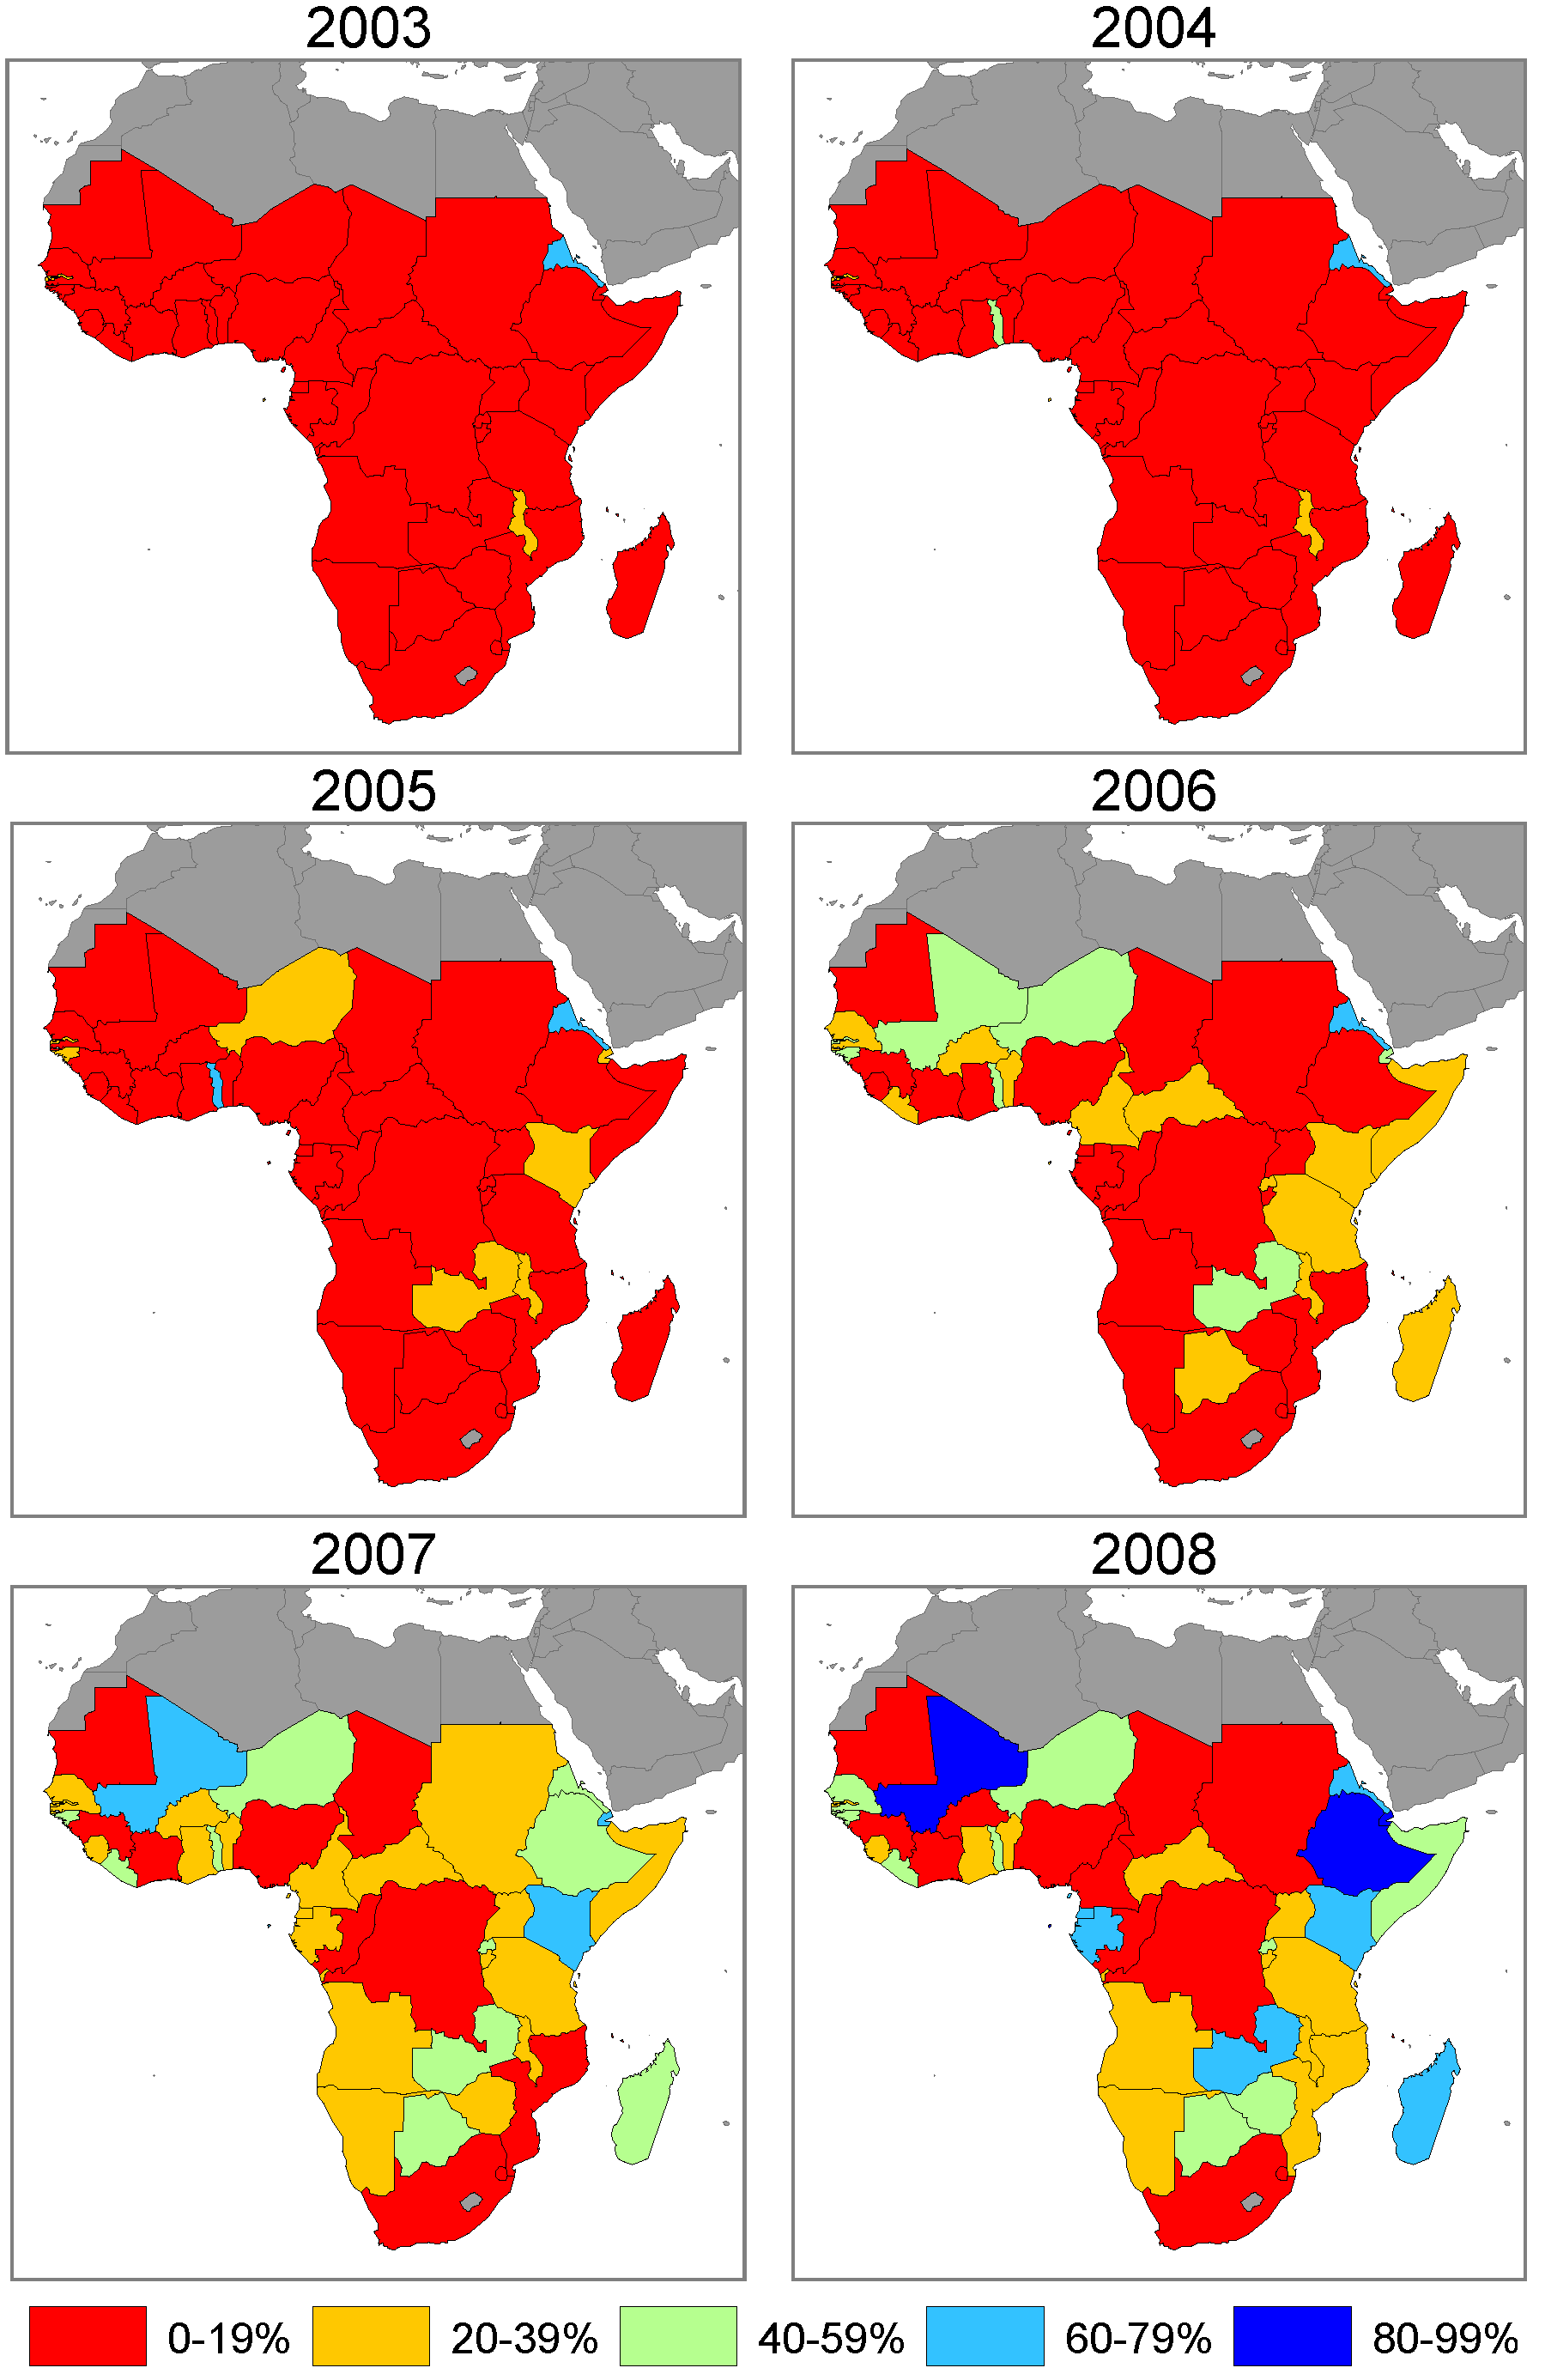 Annual maps of ITN household ownership coverage among the population at risk of malaria in 44 African countries.